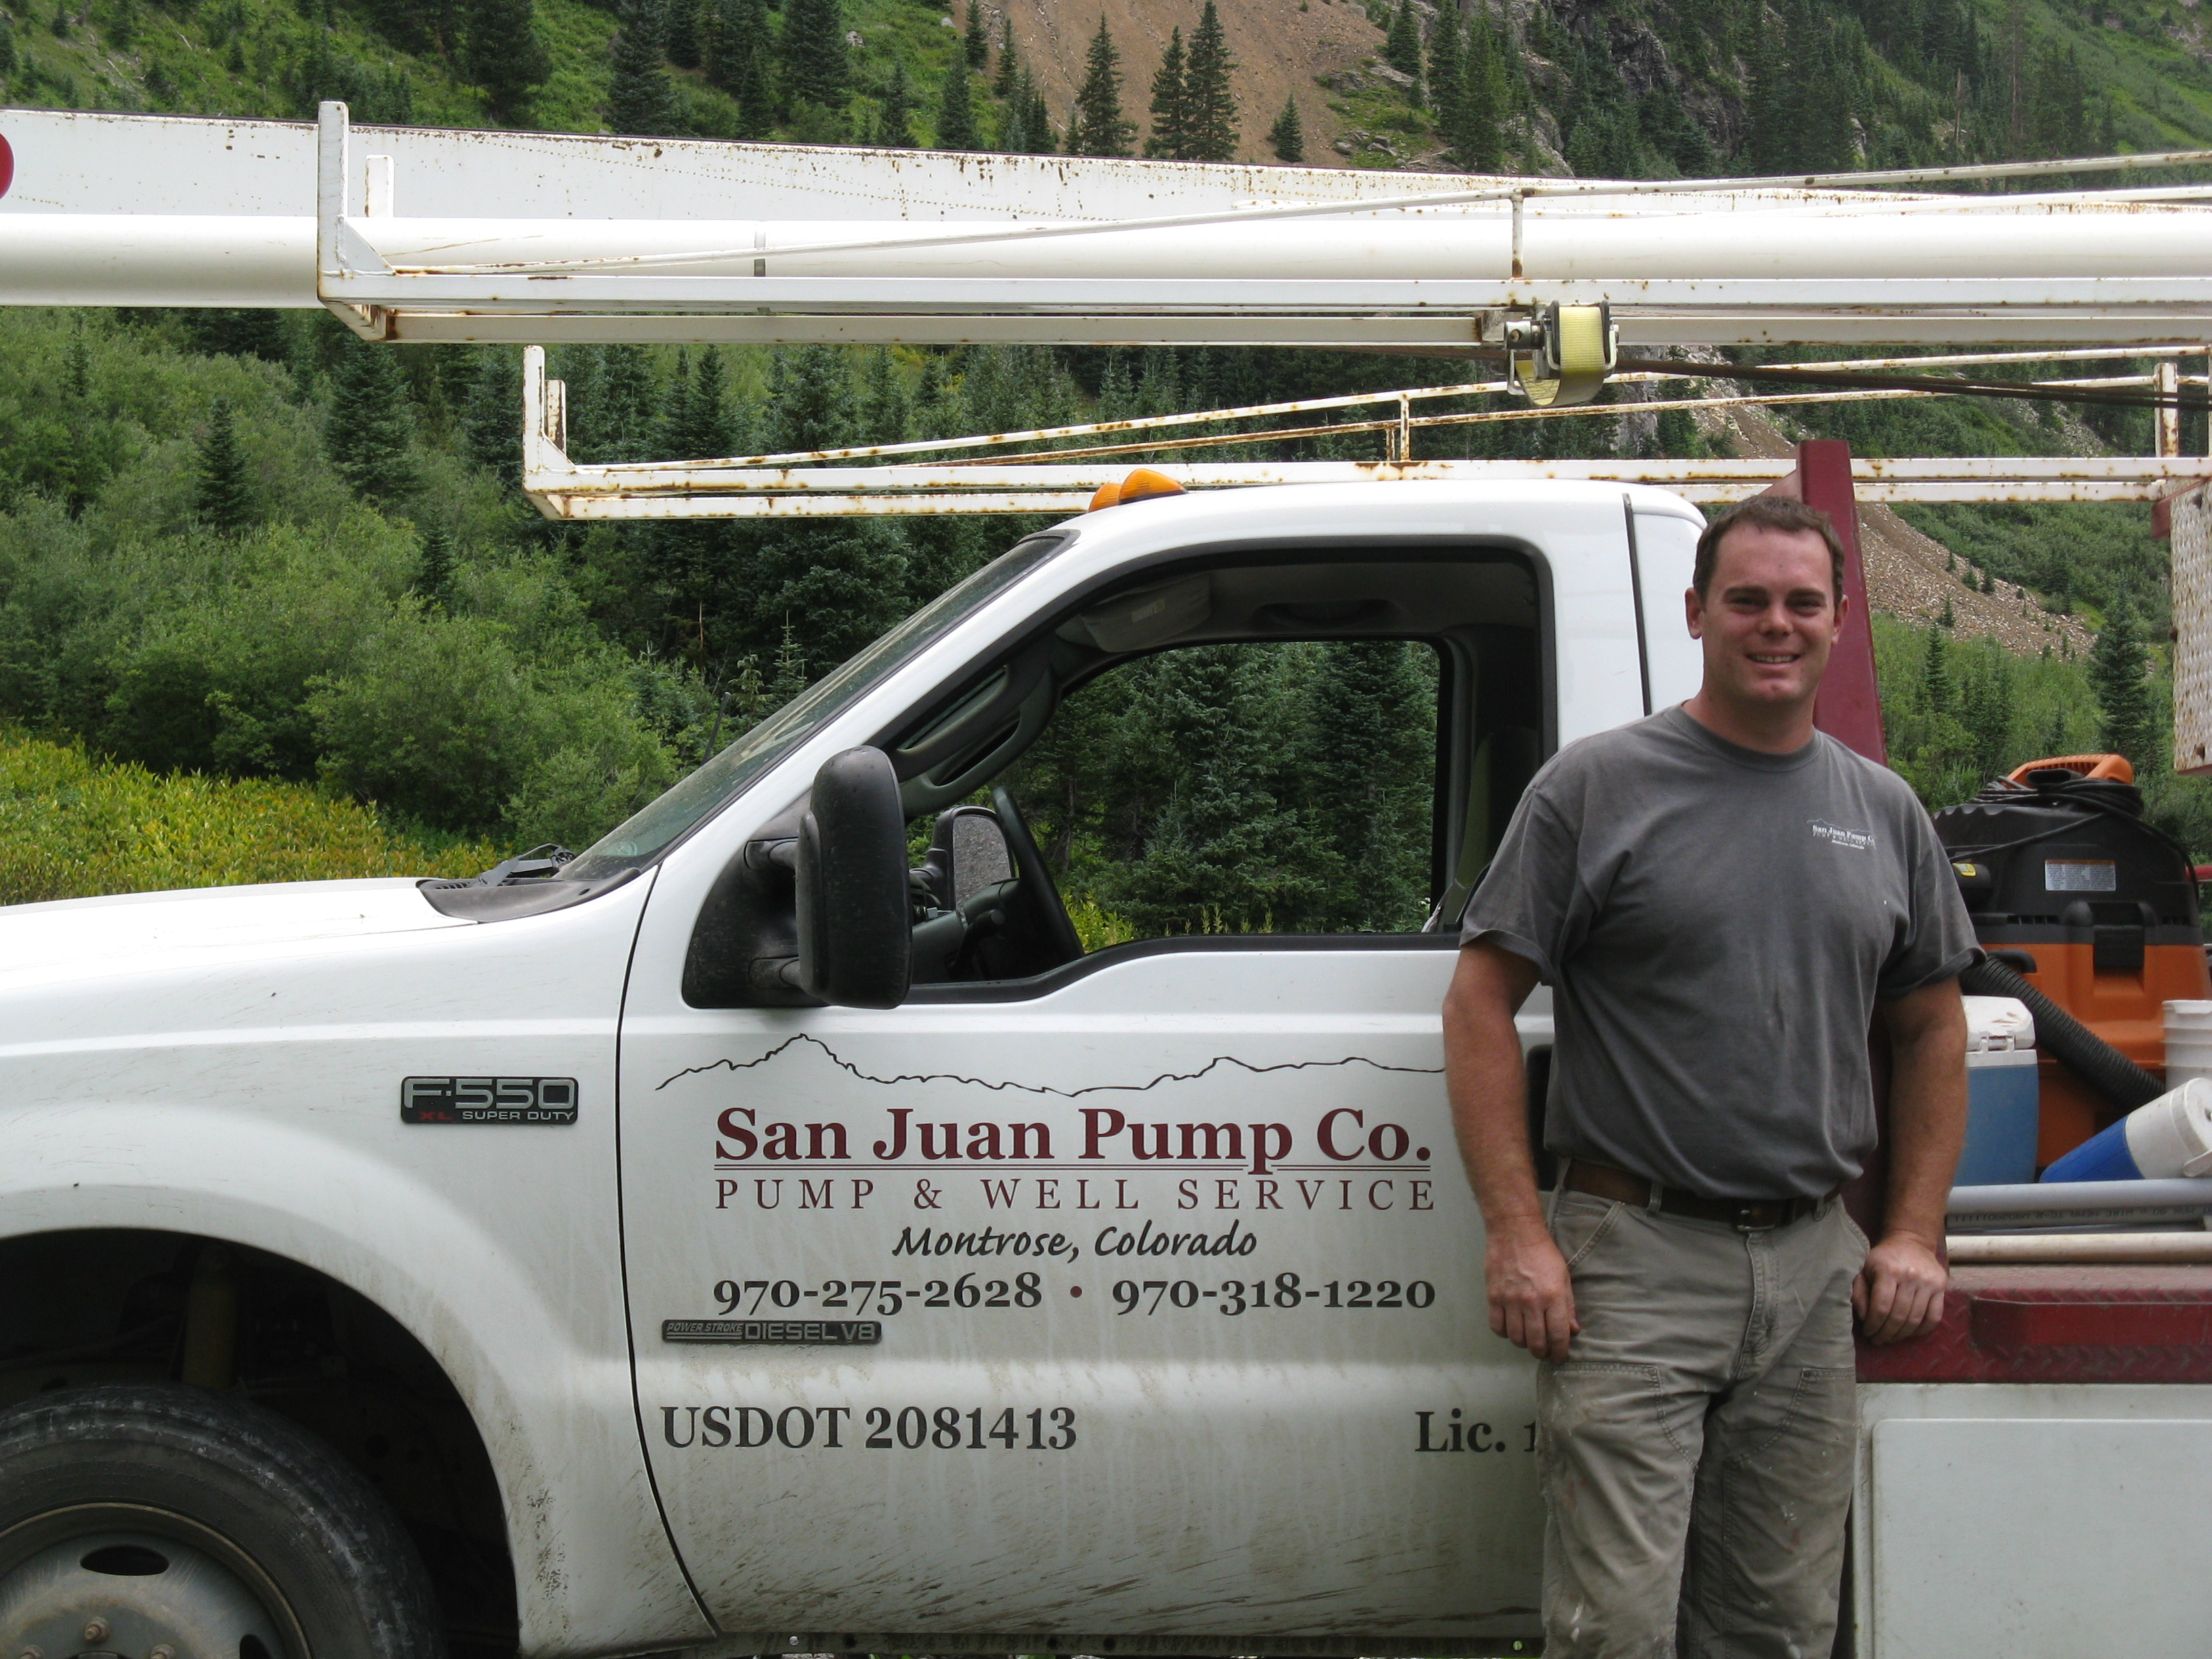 San Juan Pump team in Colorado